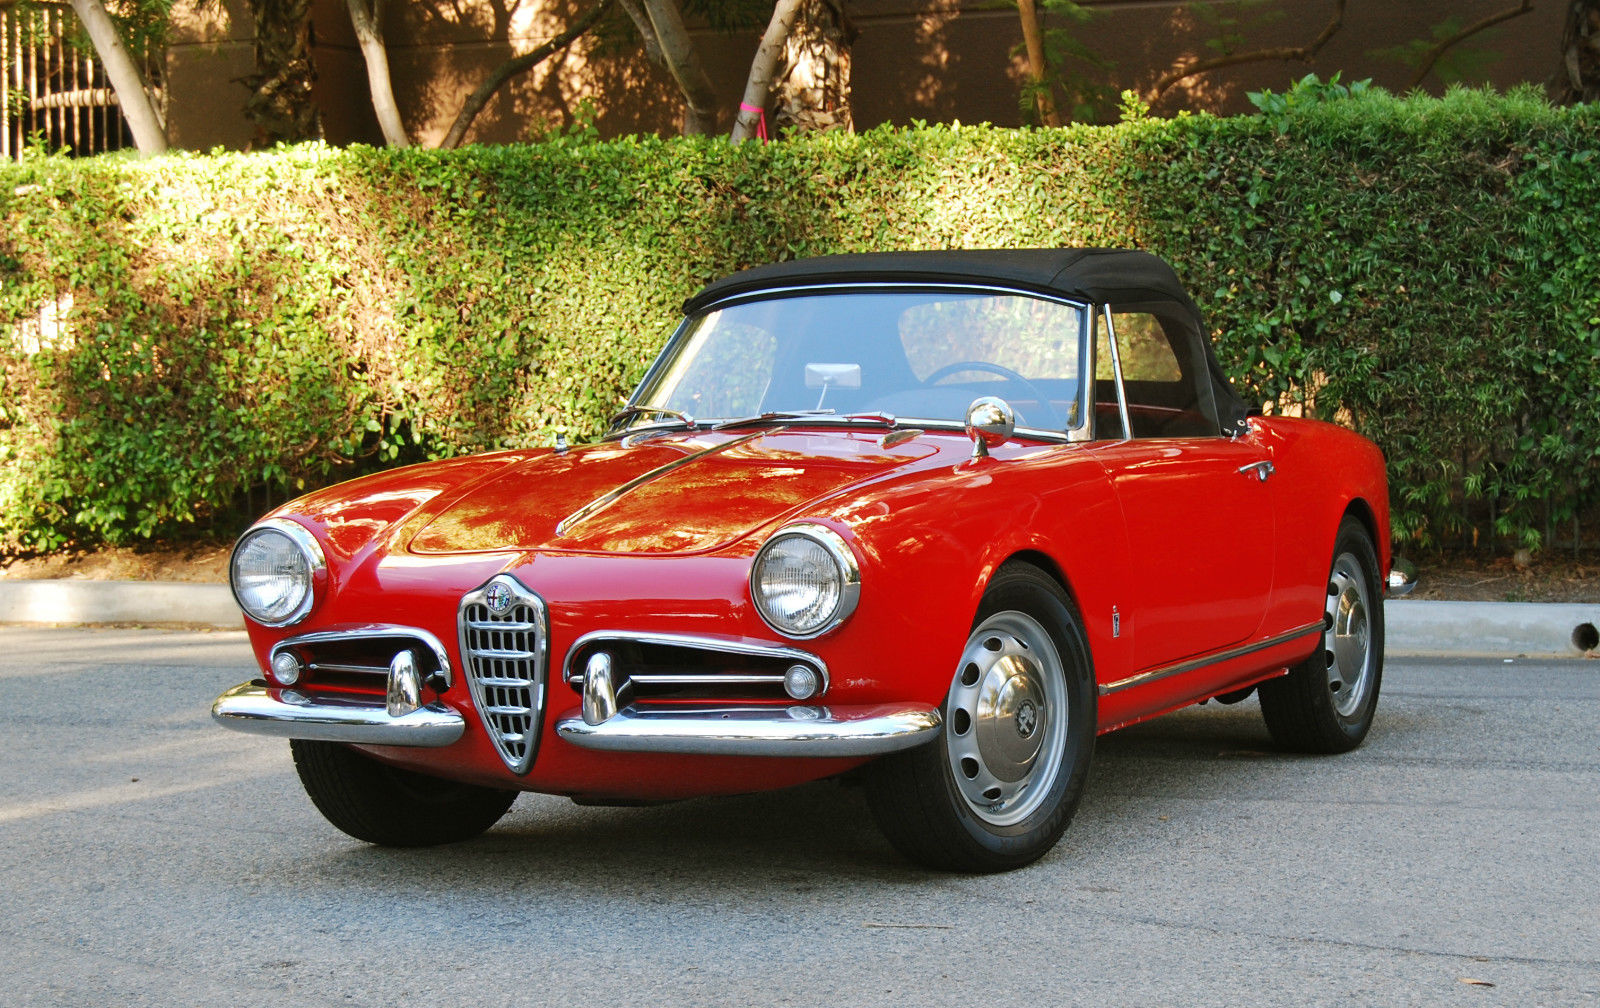 1961 alfa romeo giulietta spider 1600cc 5 speed. Black Bedroom Furniture Sets. Home Design Ideas